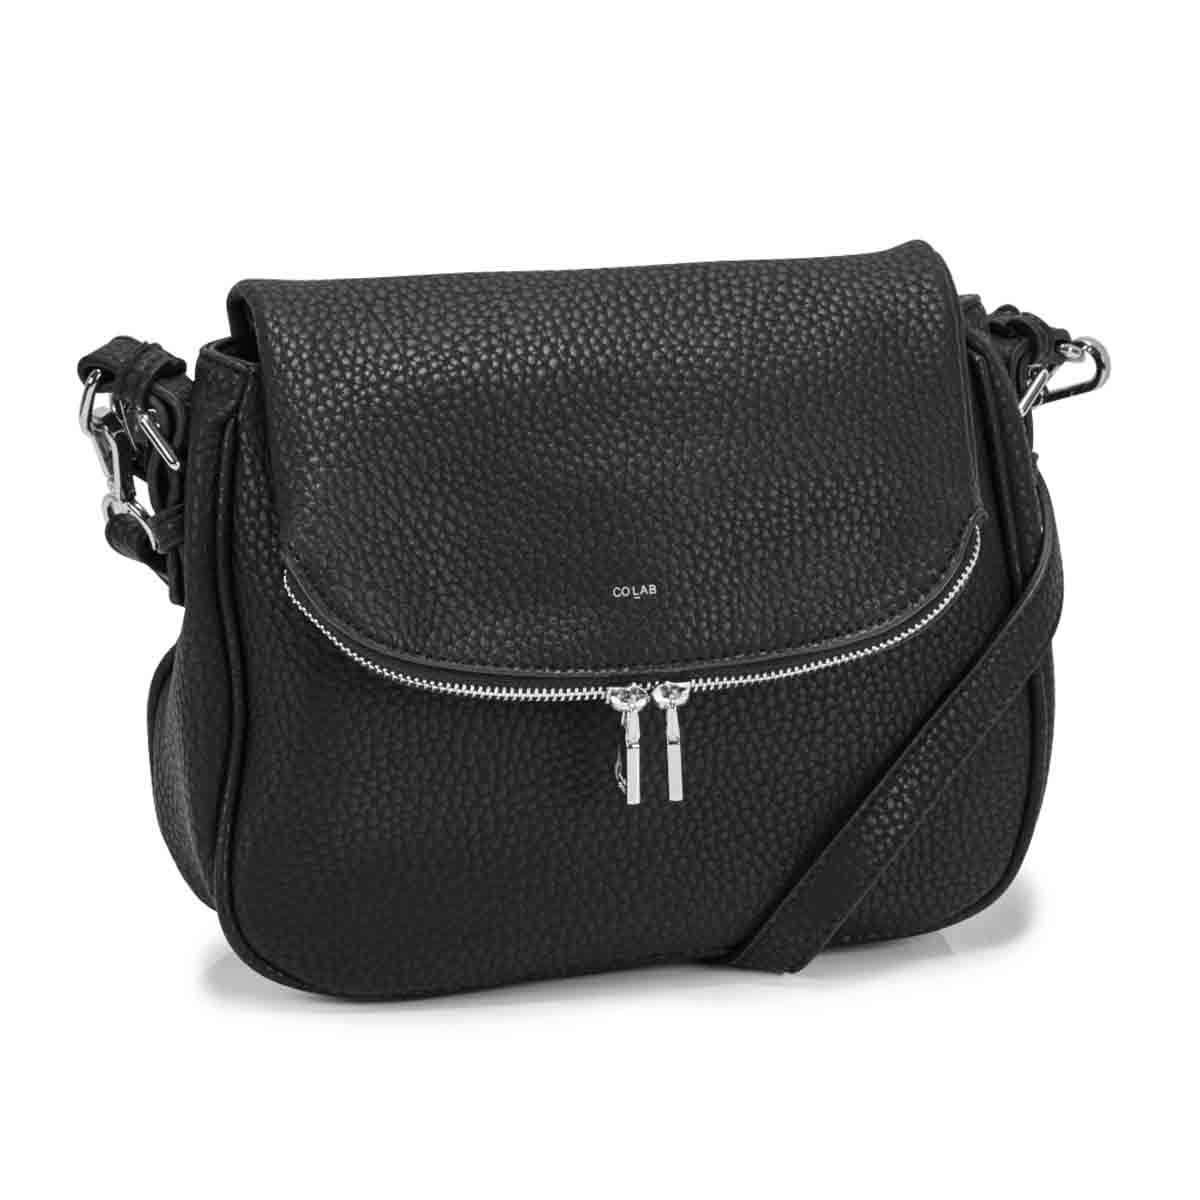 Women's SYDNEY black cross body bag